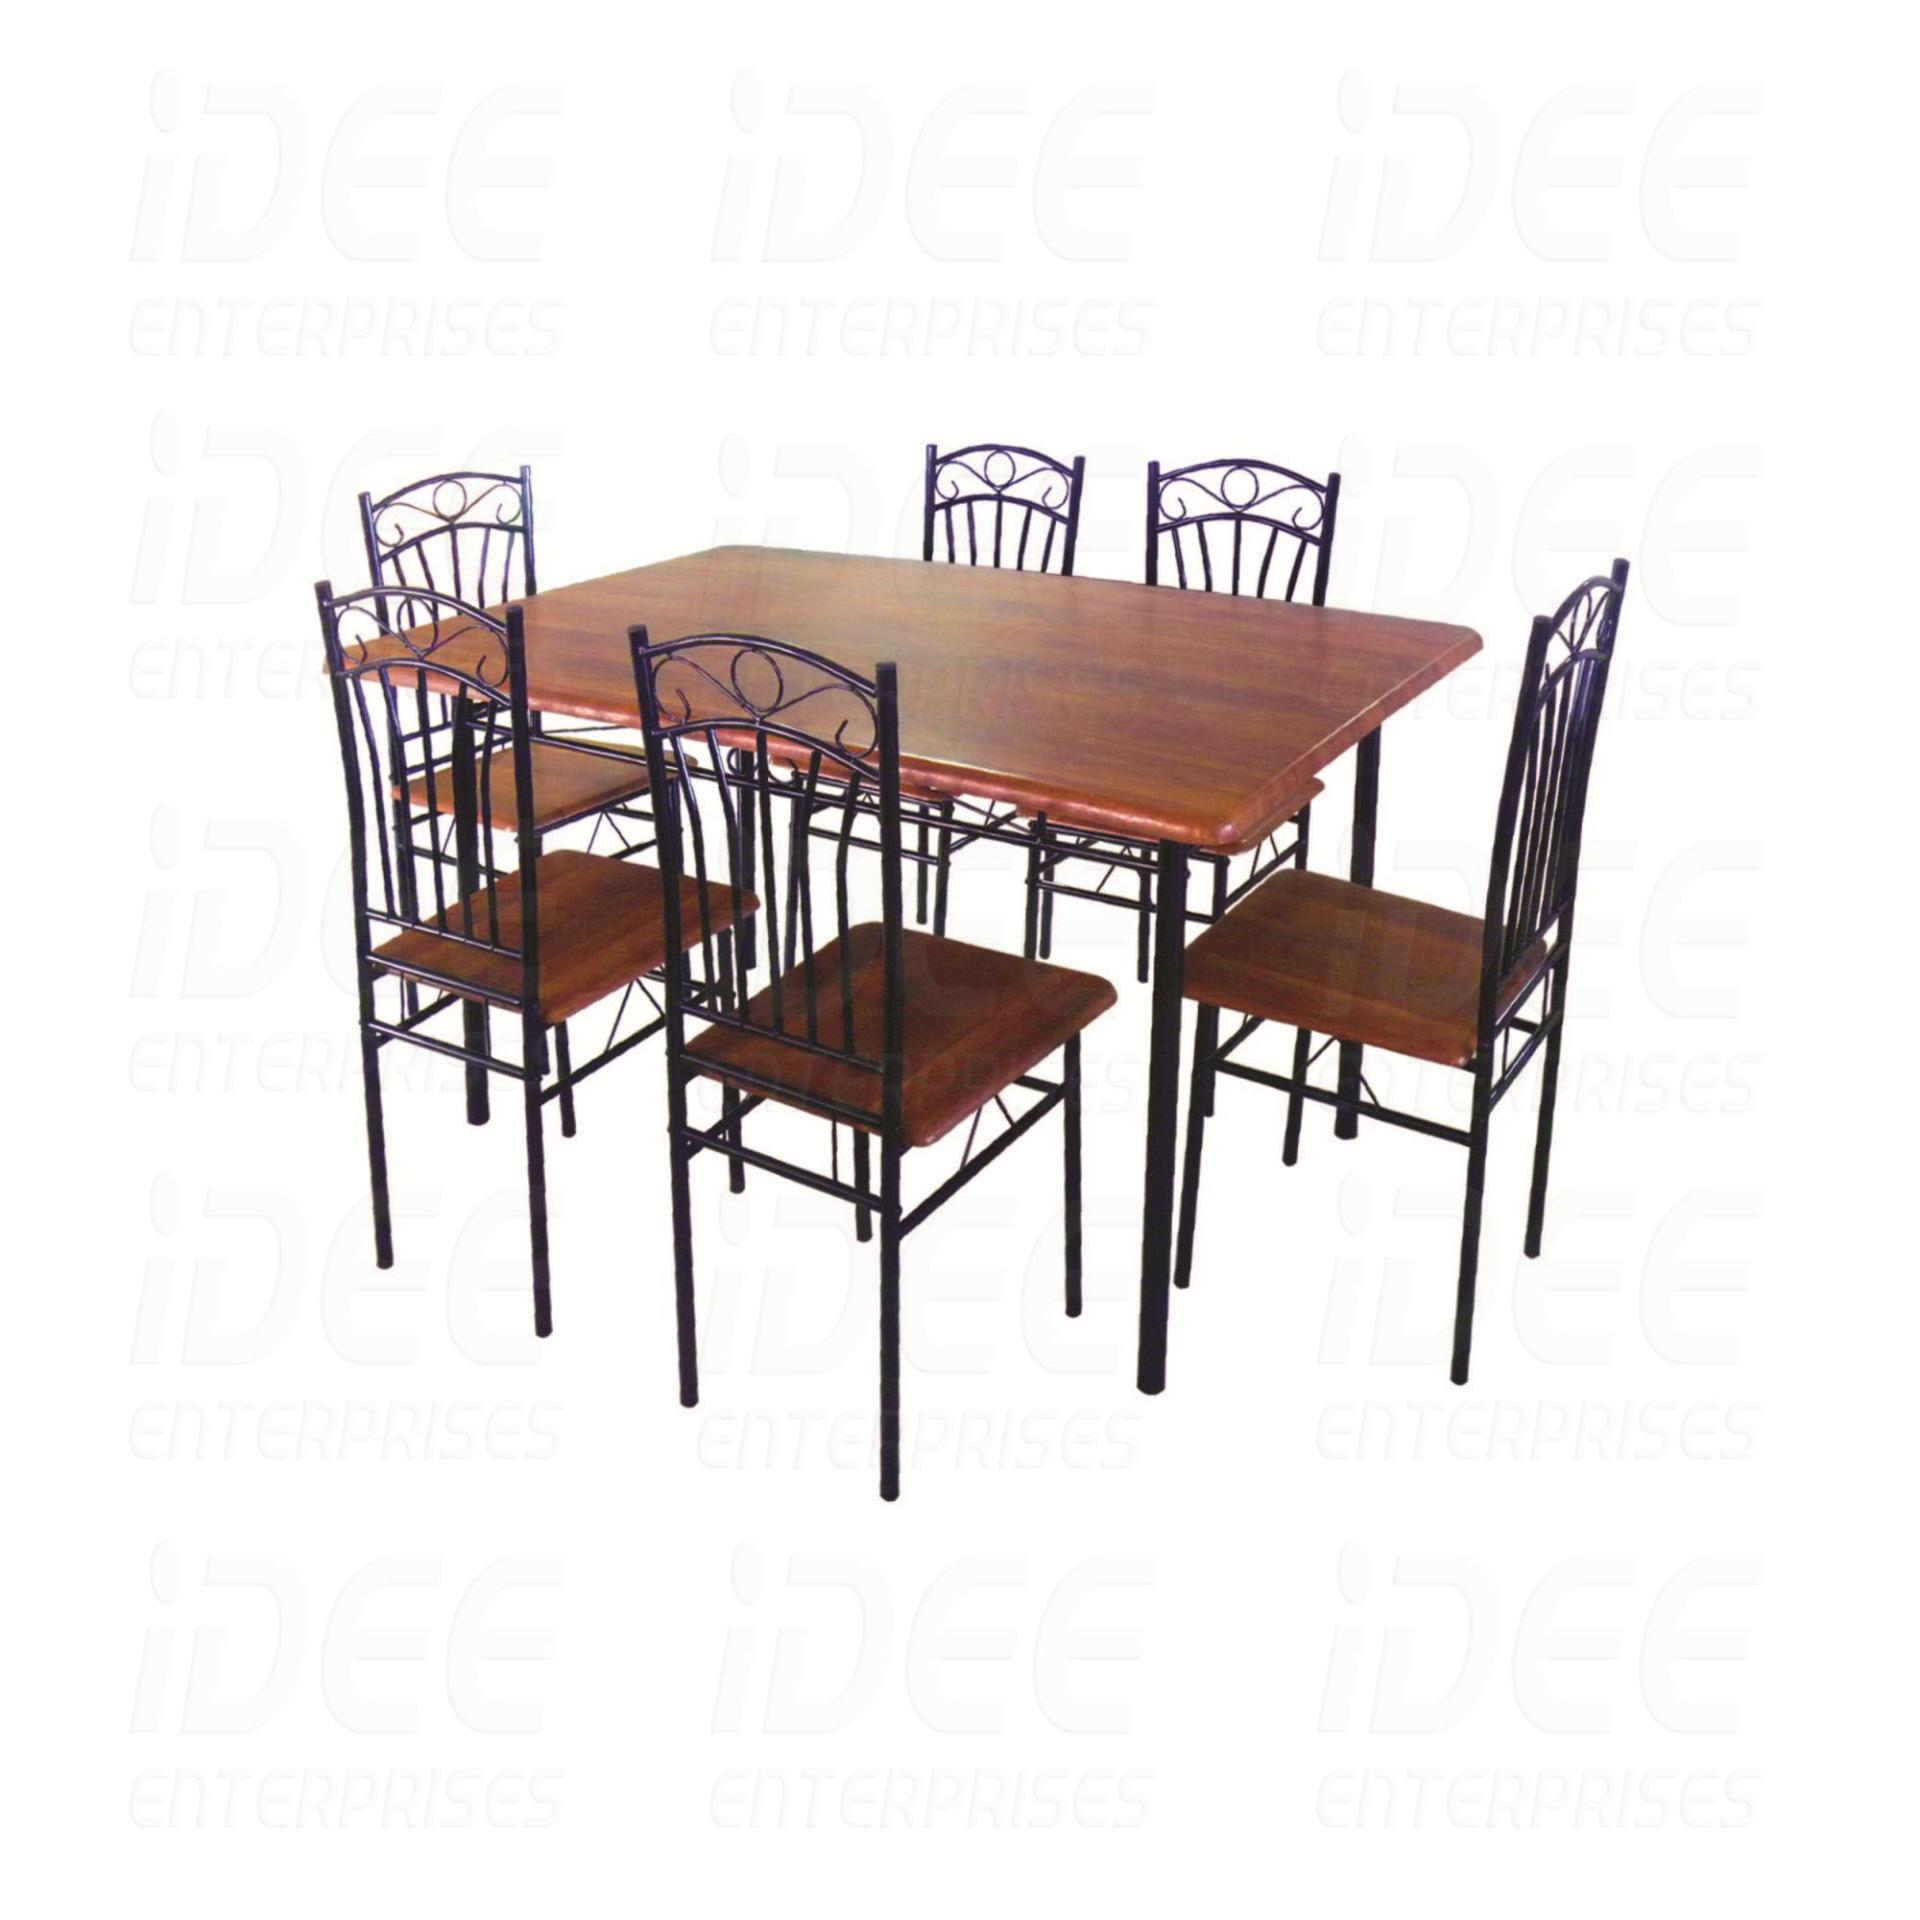 Tailee DS 022 6 Seater Dining Set (Coffee)